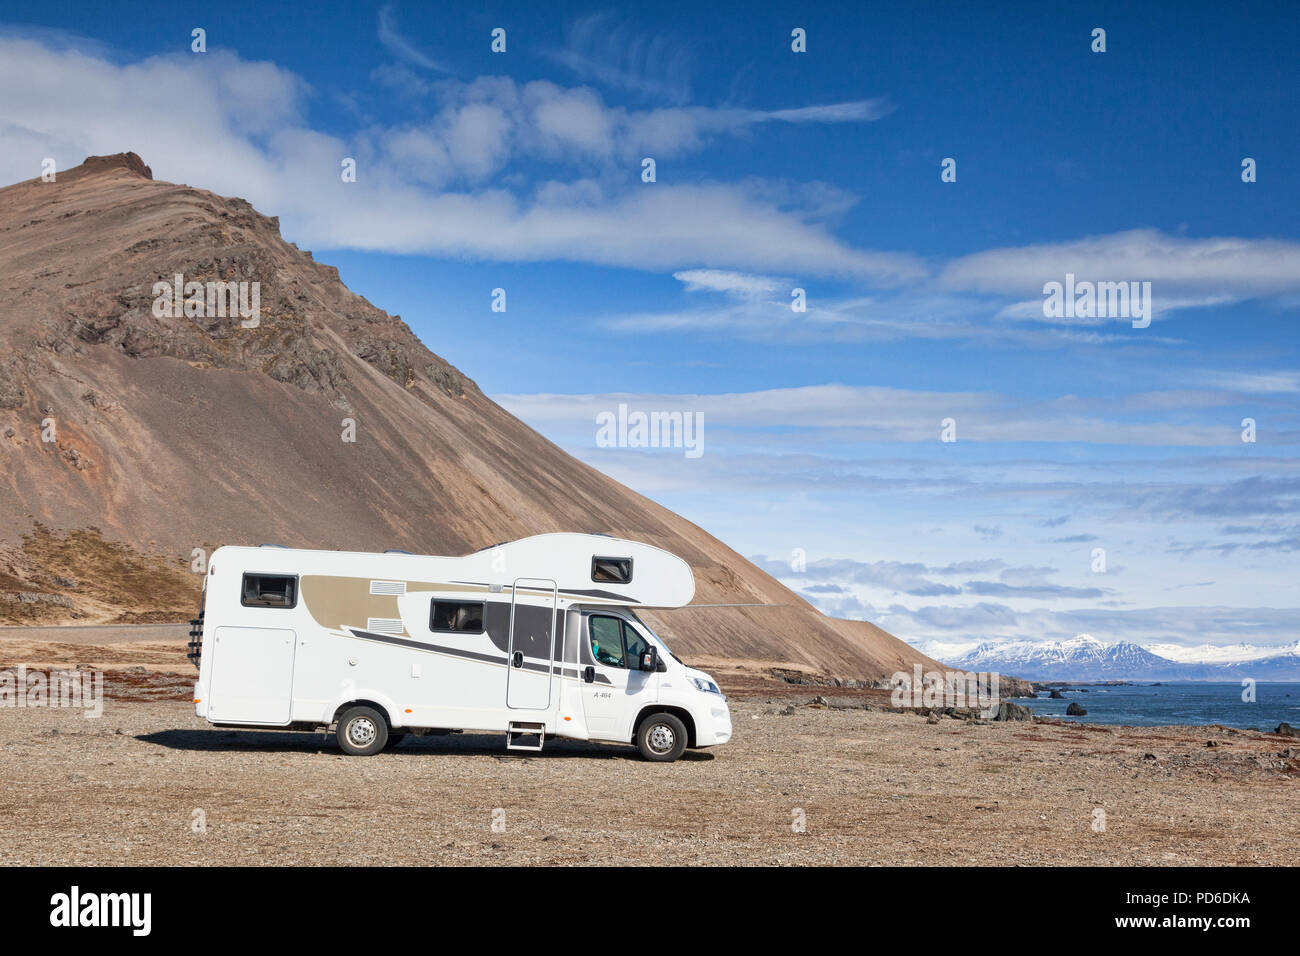 25 April 2018: South Iceland - Motorhome parked in a rest area beside the Ring Road in South Iceland - Stock Image